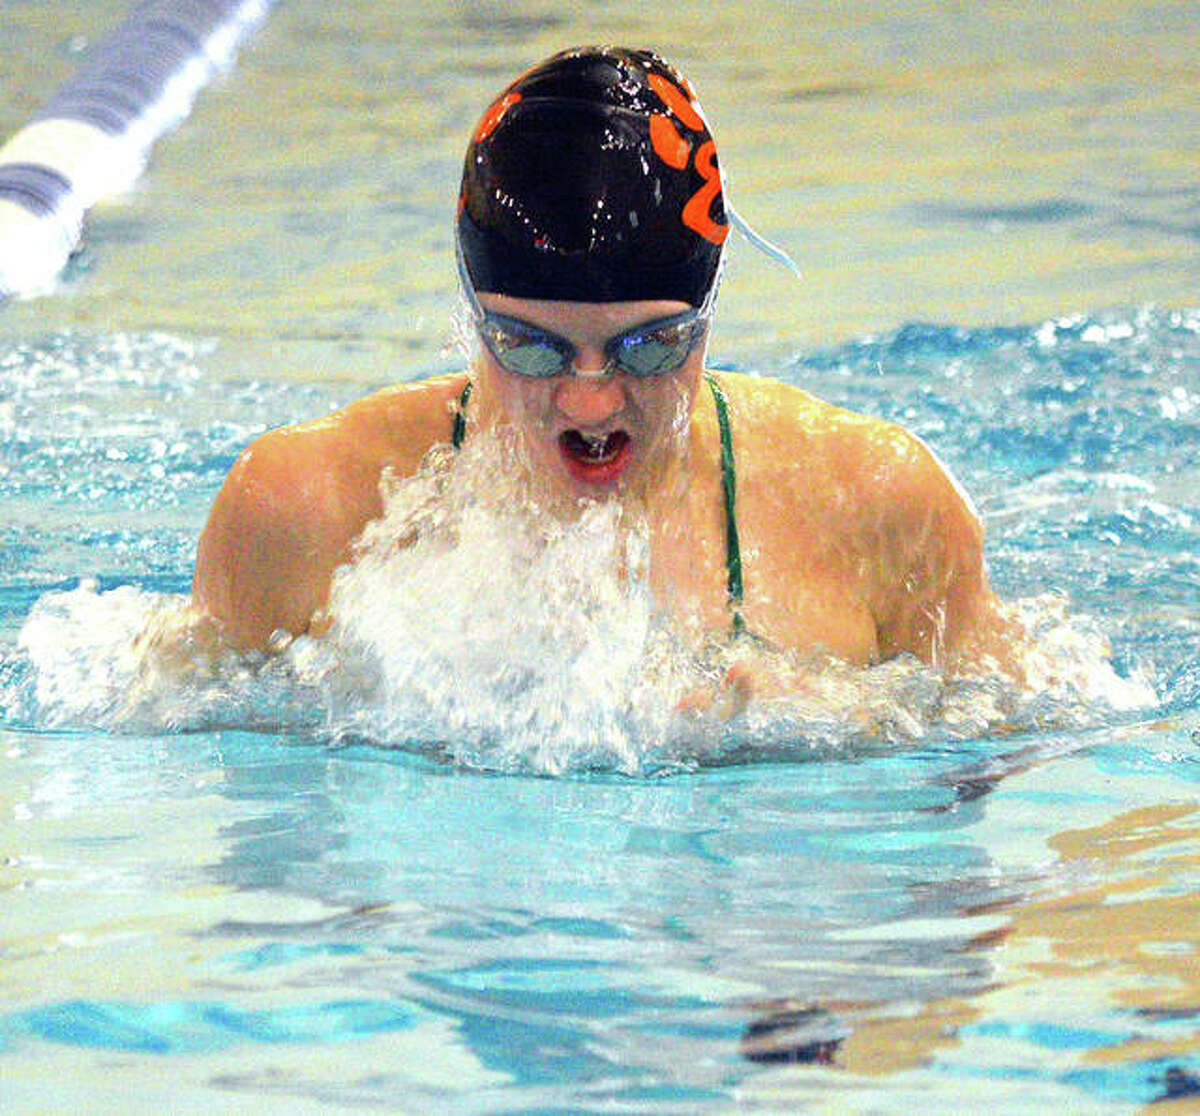 Montclaire's Allison Naylor, in 15-18 girls, posted victories in the 200-meter freestyle, 100 individual medley and 100 backstroke in Thursday night's home SWISA victory over the Collinsville Gators.